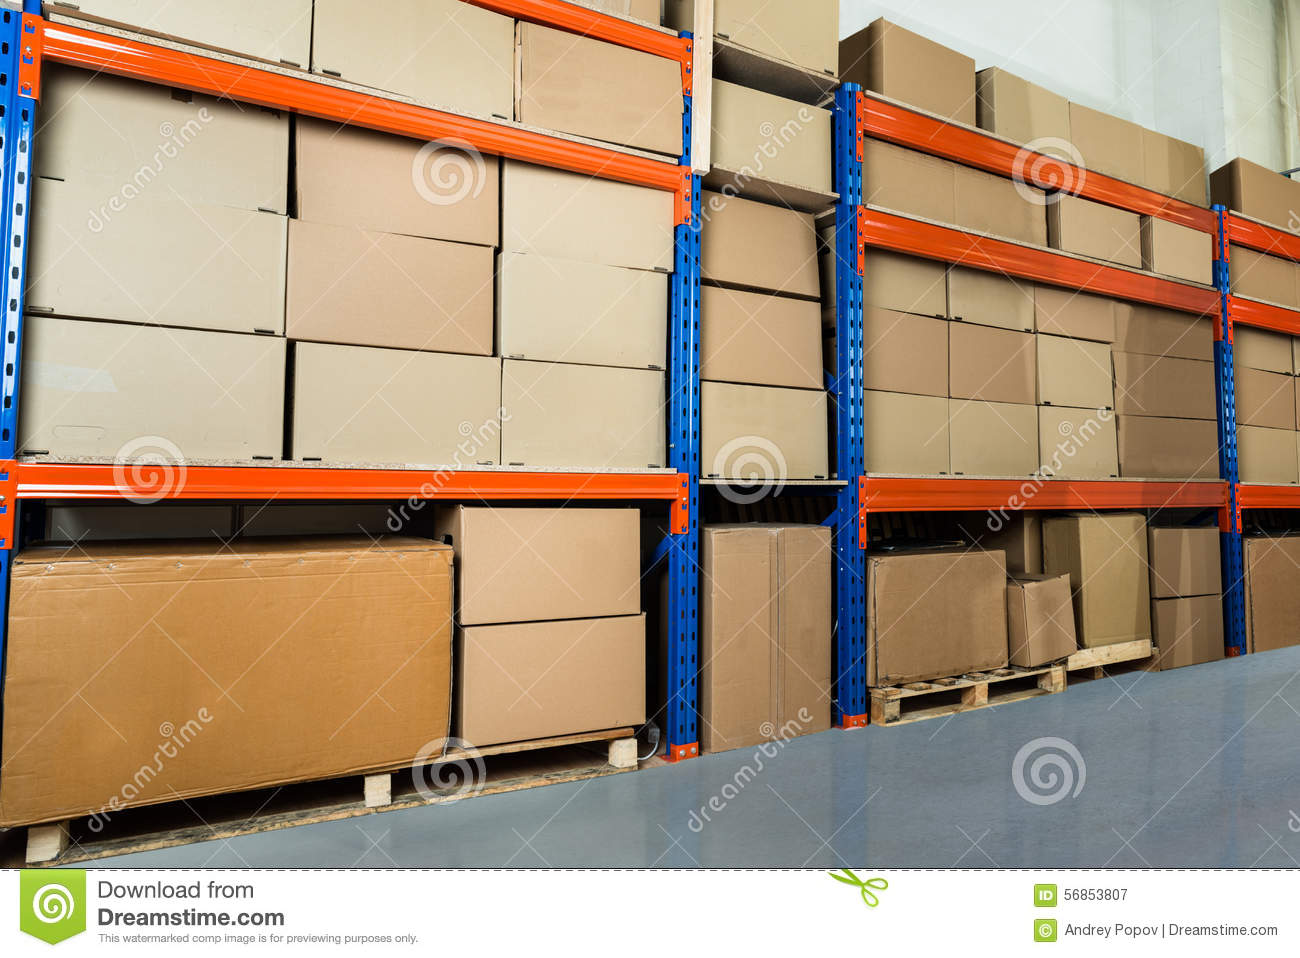 Lagerregal Clipart Warehouse Shelf With Cardboard Boxes Stock Photo Image